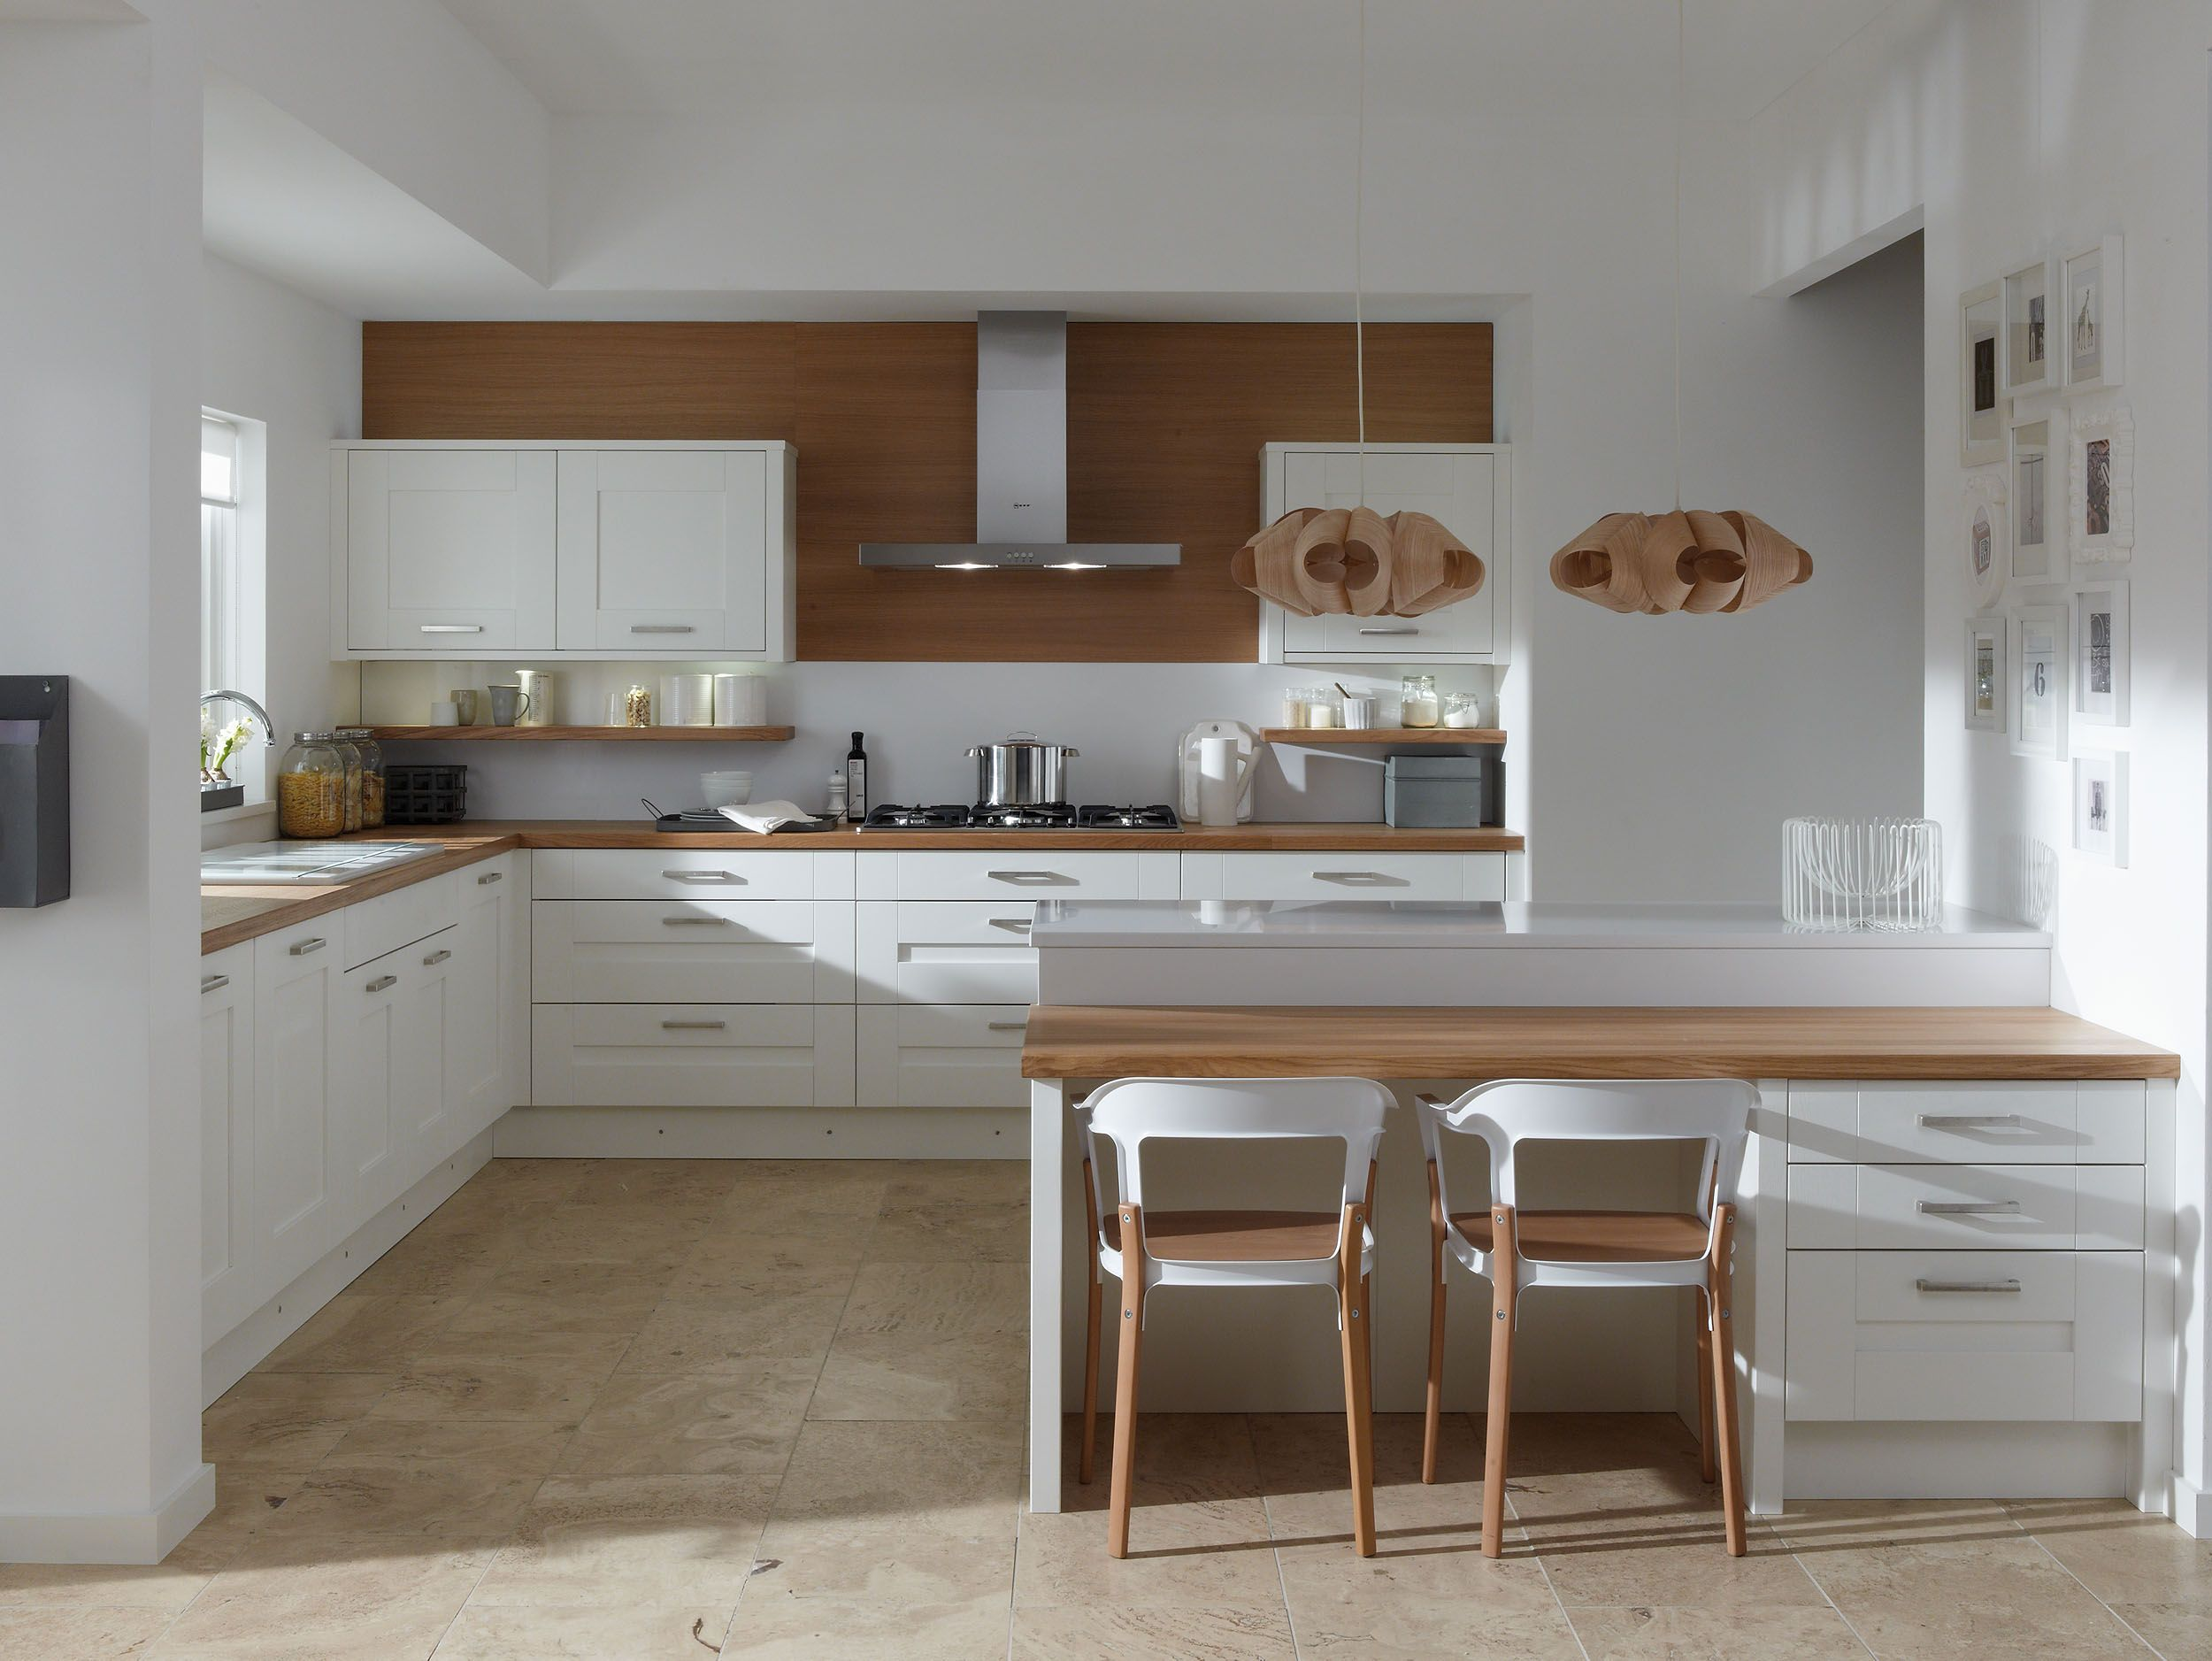 Wooden Classic Kitchen Design Ideas in Cool L Shaped